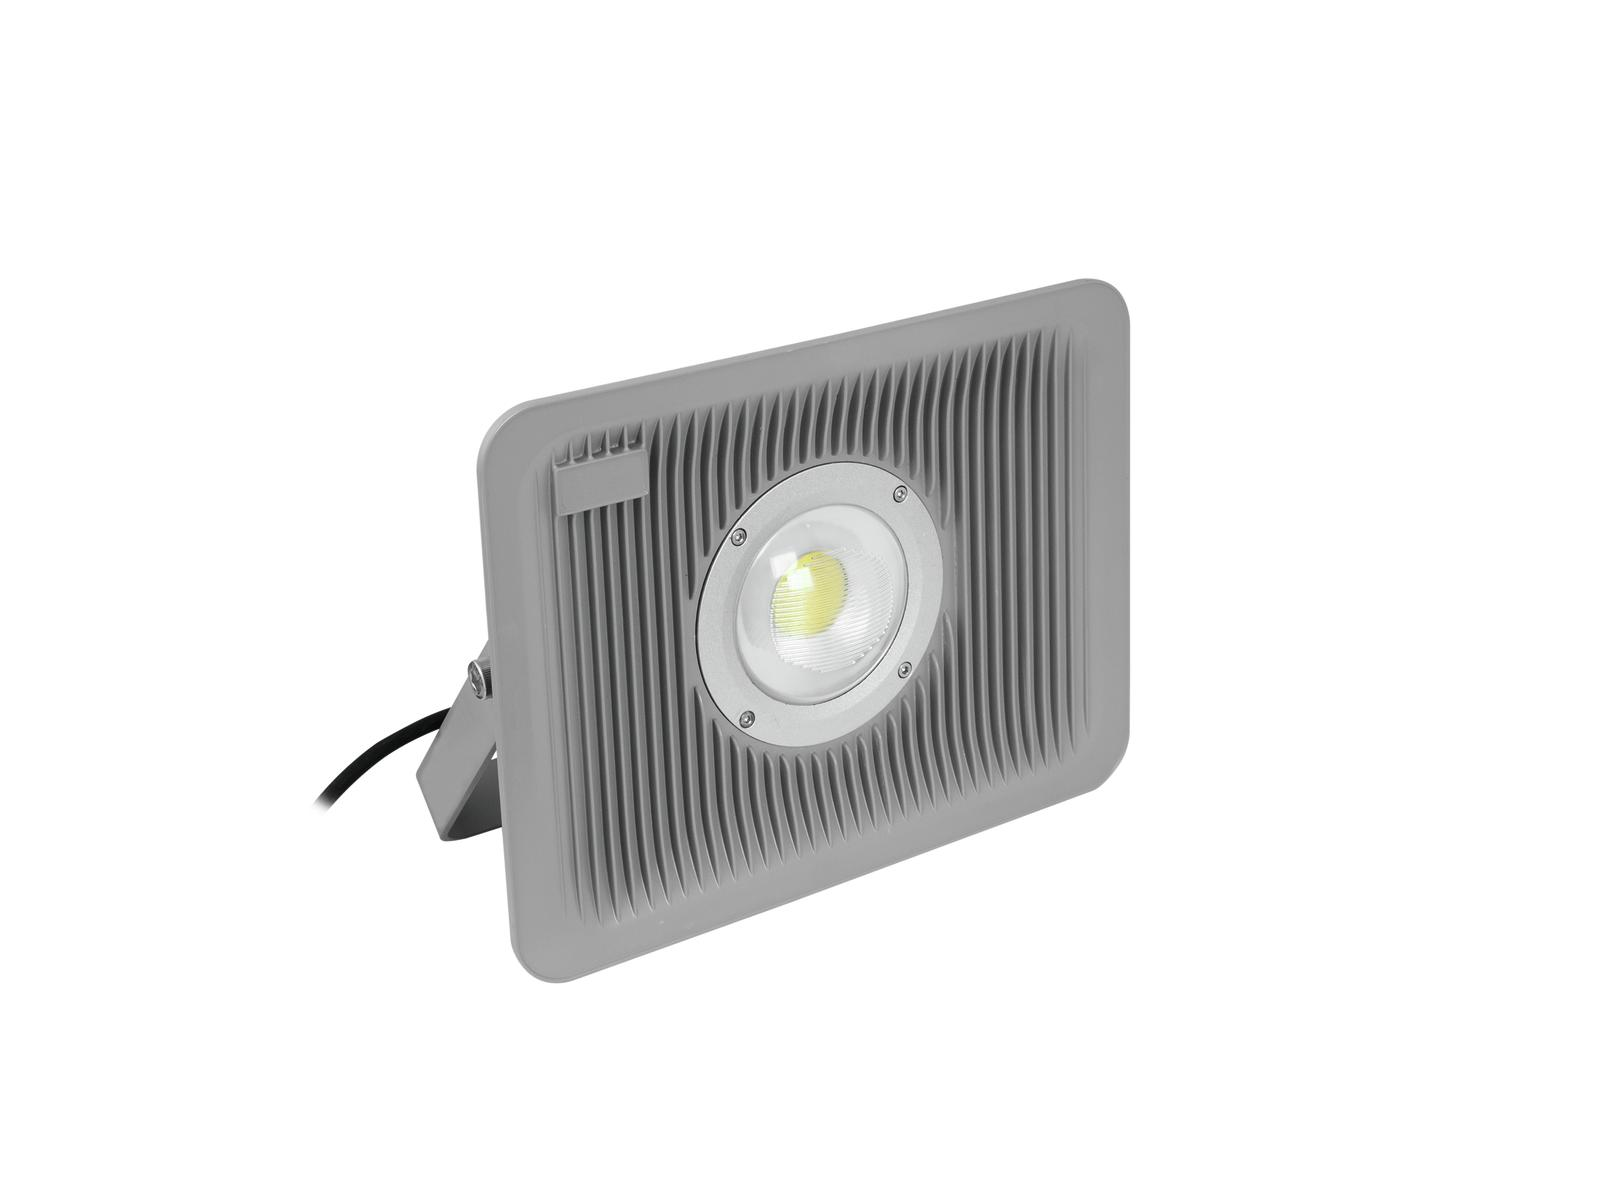 Eurolite LED reflektor IP FL-80 Slim, 1x 80W COB, 3000K, 120, IP65